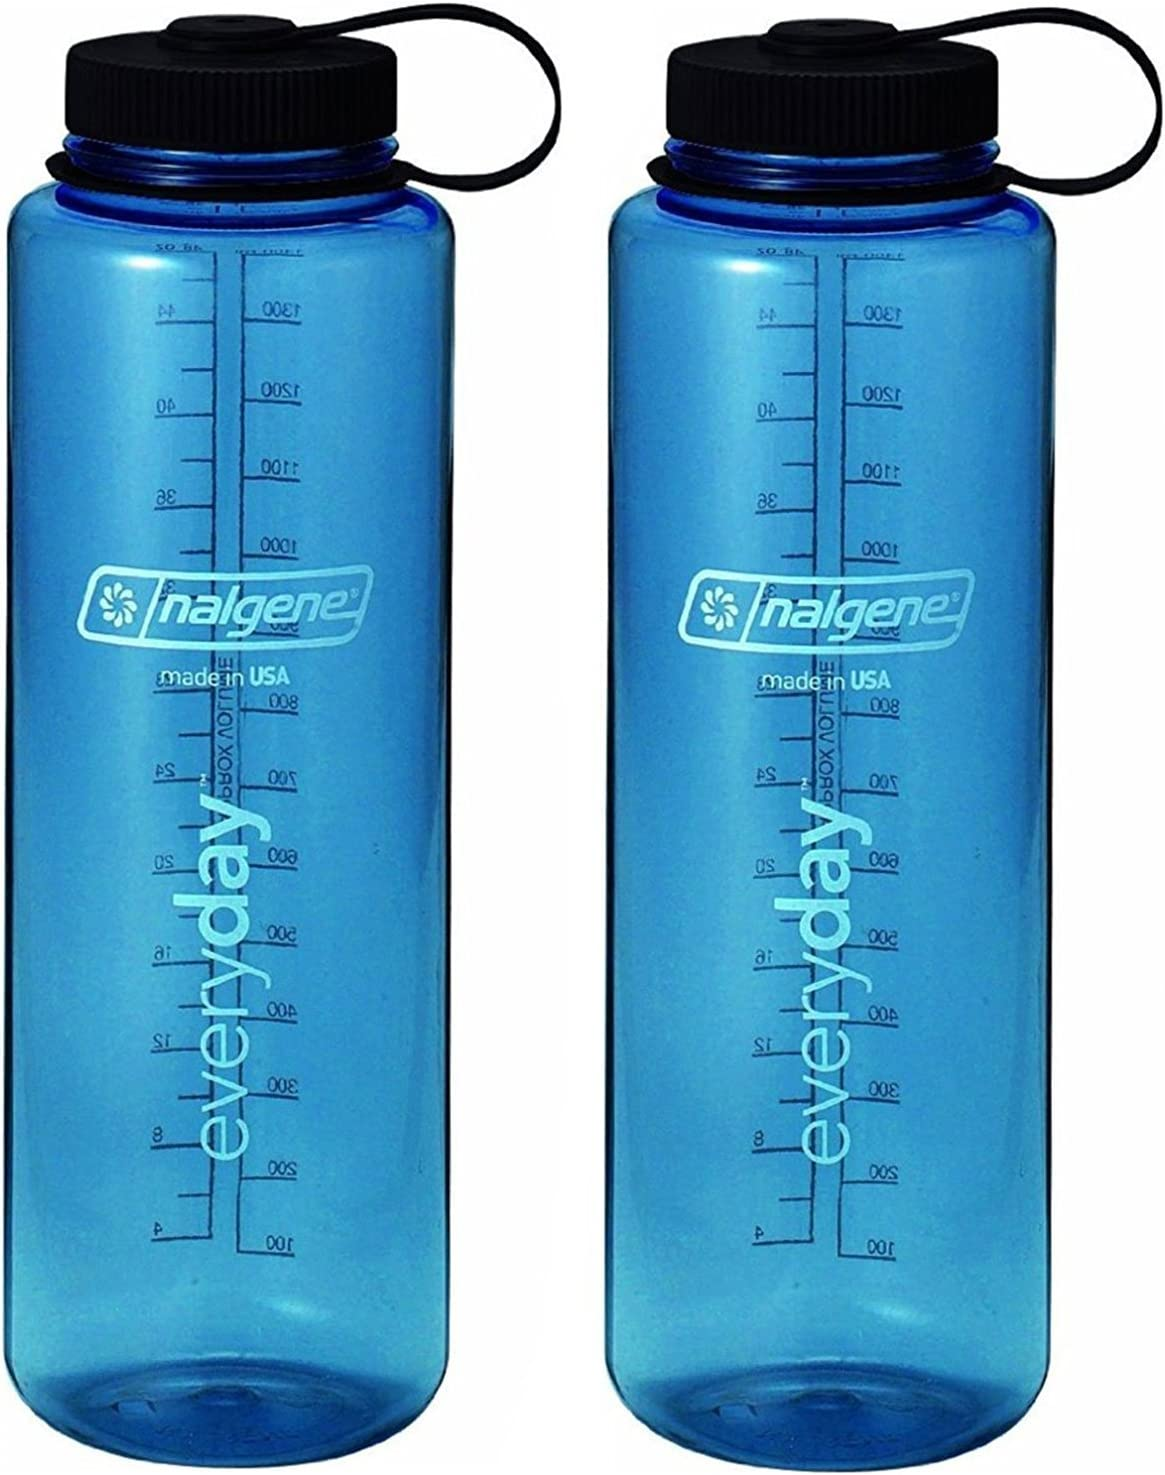 Nalgene 32oz Wide Mouth Everyday Water Bottle - Tritan - 2 Pack